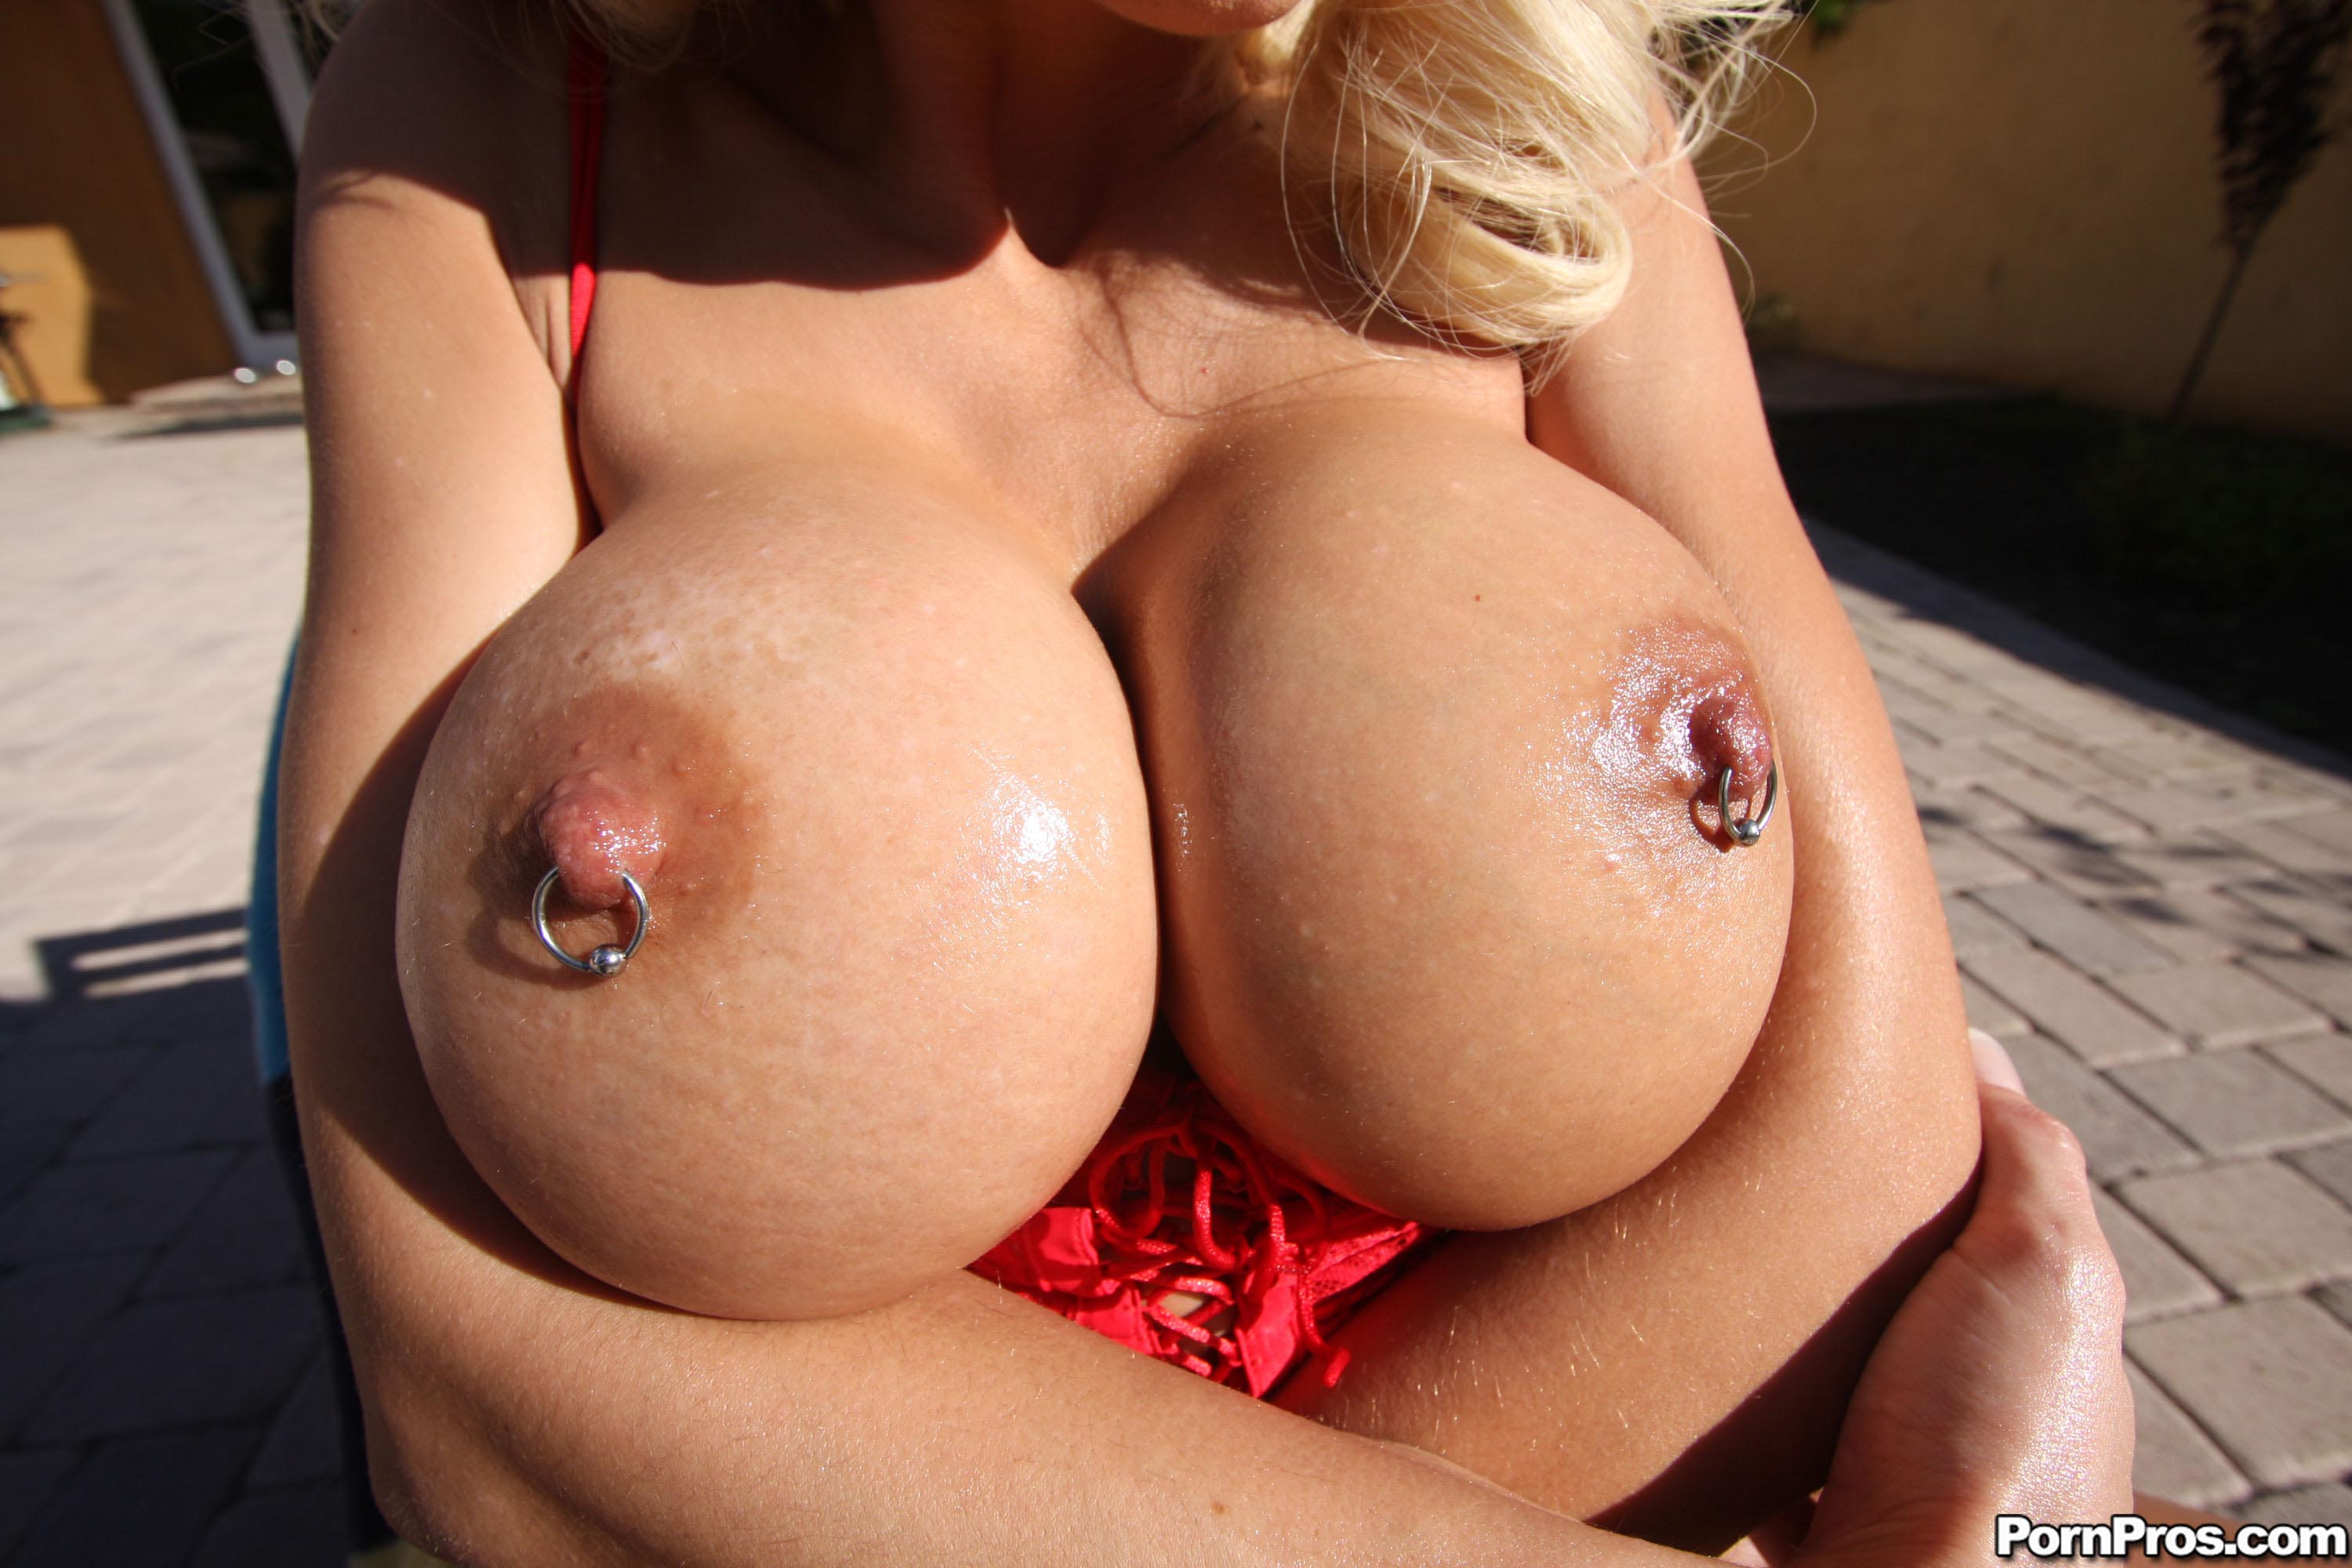 tattooed blonde shows off her big and round boobs then gets her hot